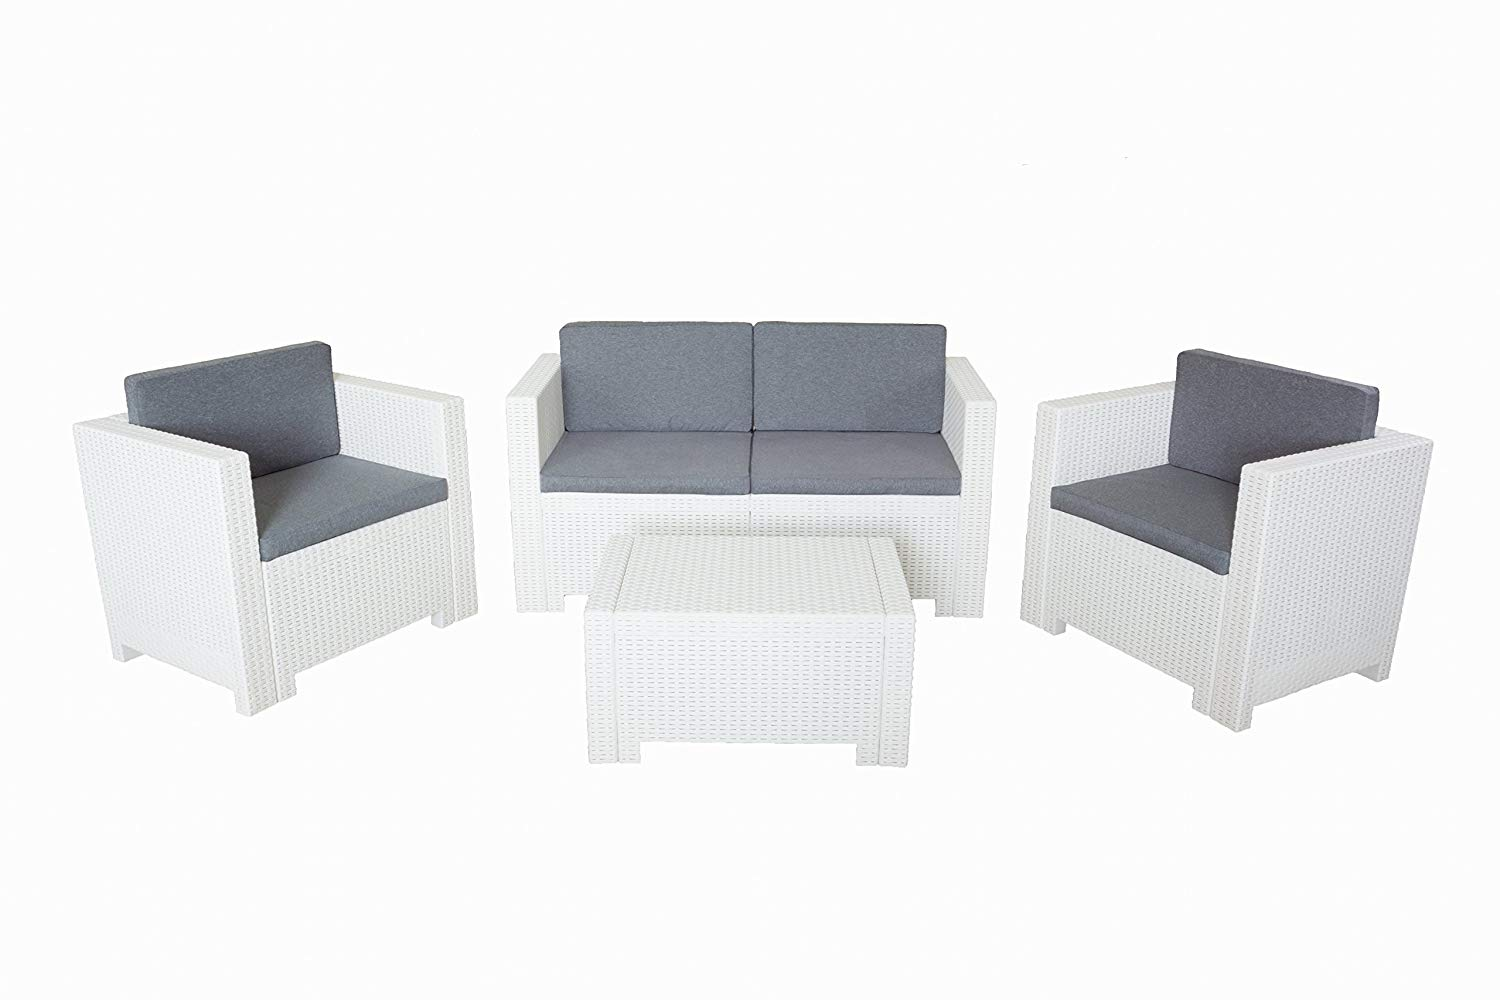 Bica 9017.4 Set Salottino in resina bianco mod. Colorado 4 Posti 119x64x57 cm